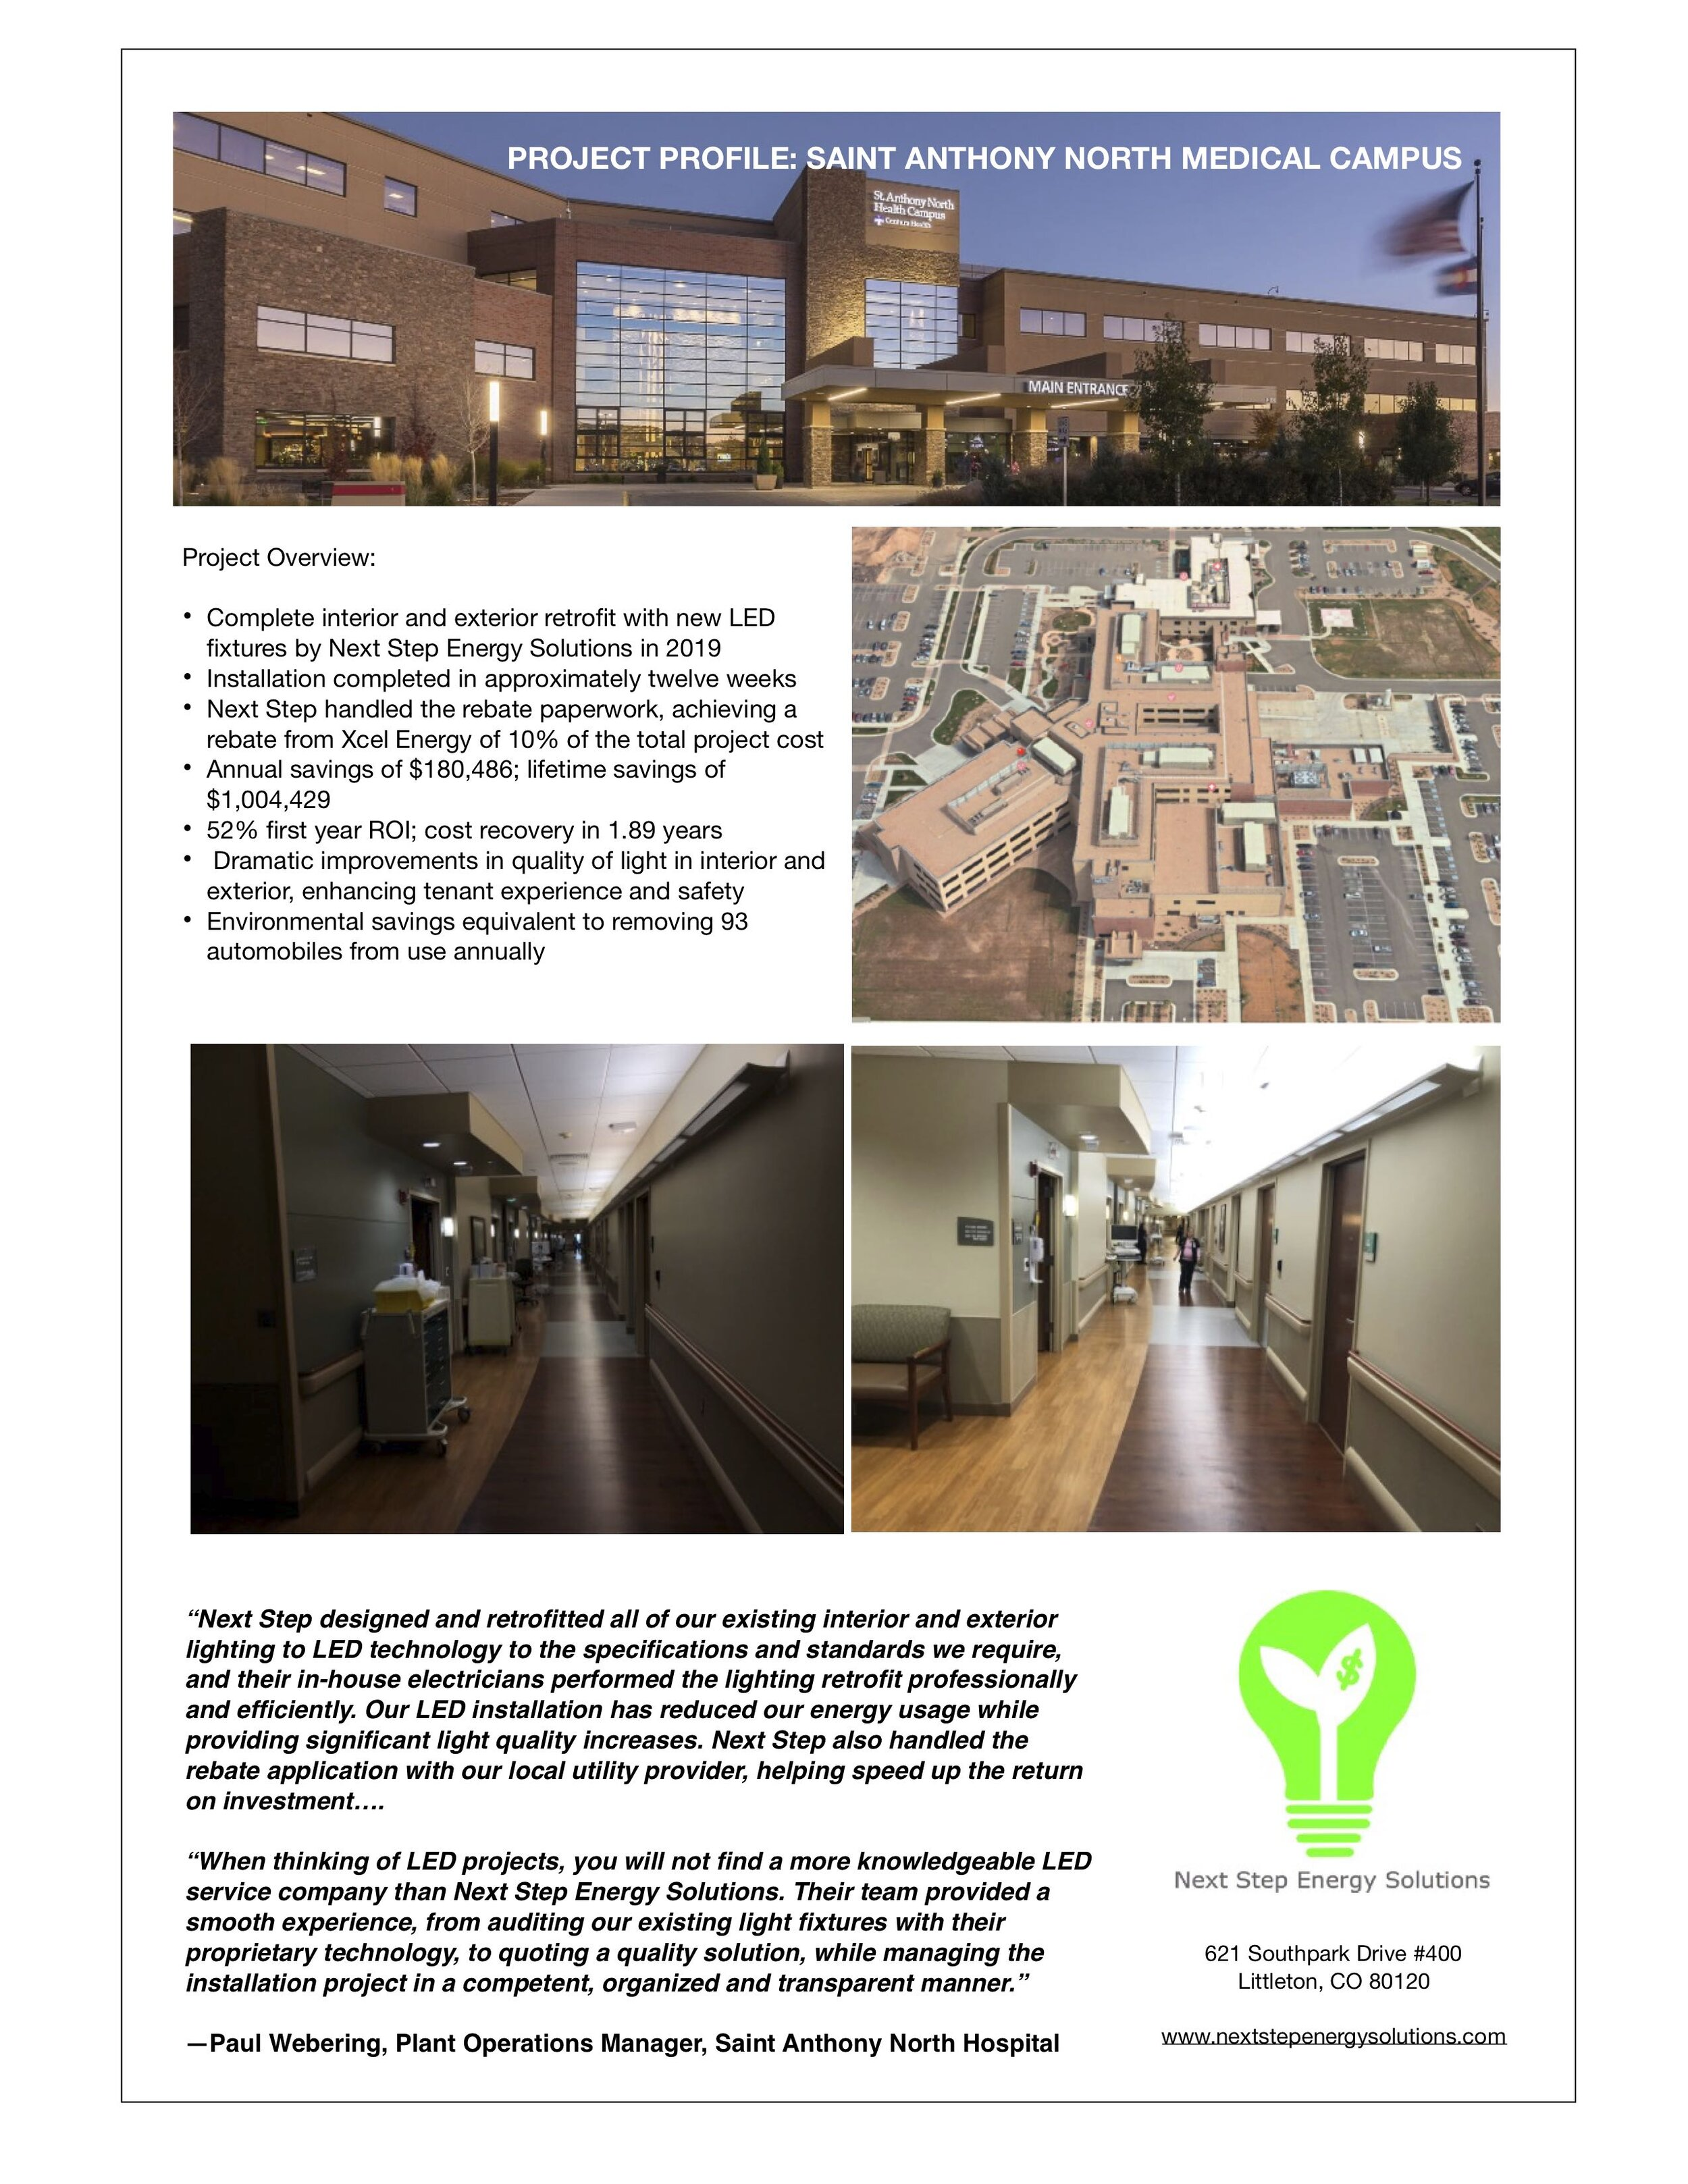 Project Profile Saint Anthony North.jpg